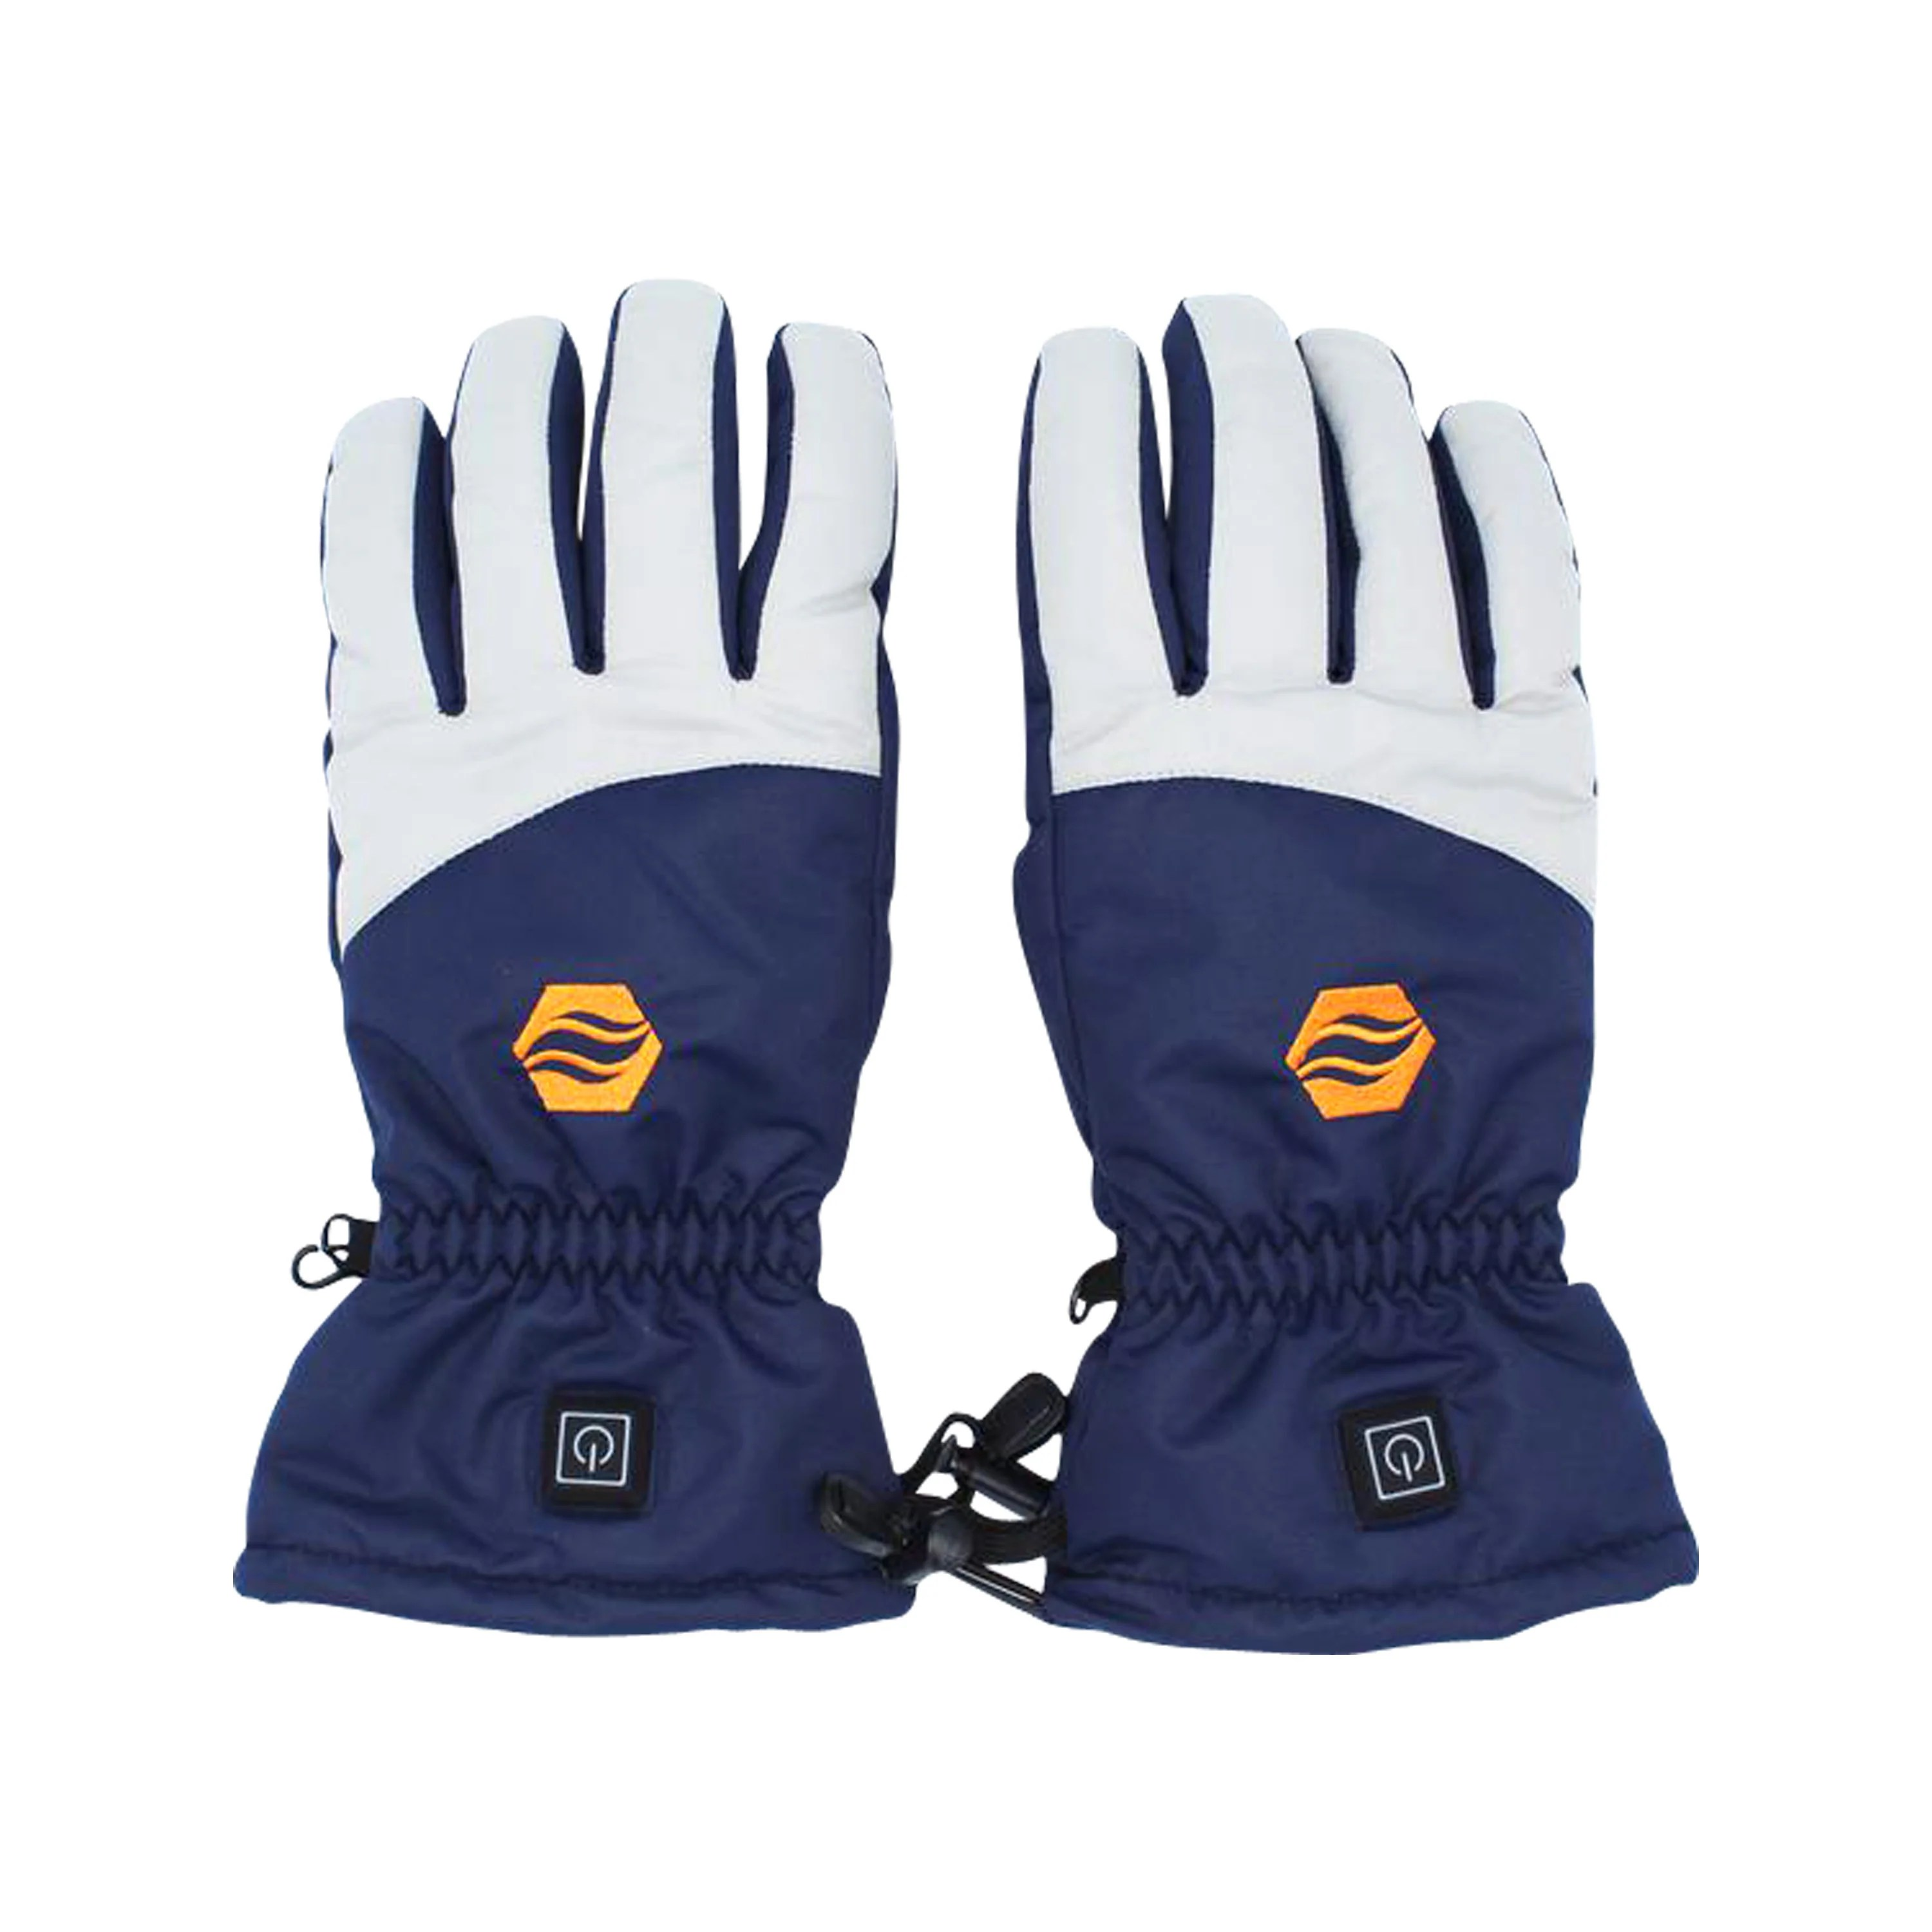 small resolution of rechargeable heated gloves 3 level heated winter gloves for men women